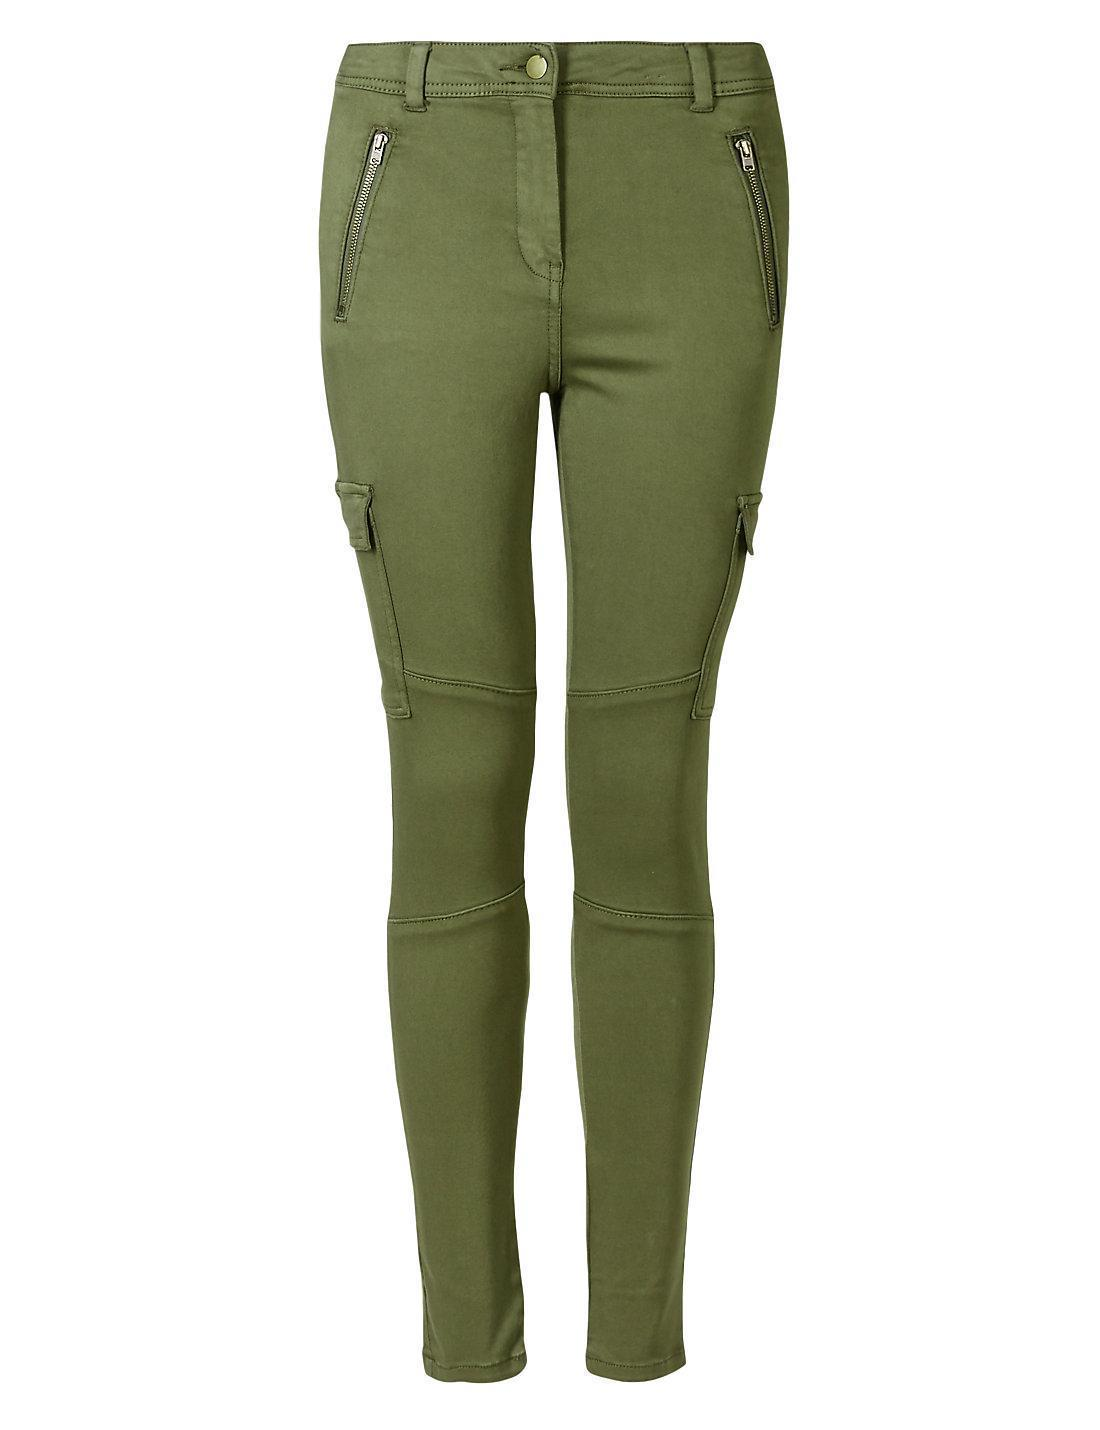 New Ex M/&S Ladies Cotton Rich Soft Touch  Skinny Cargo Trousers Jeans